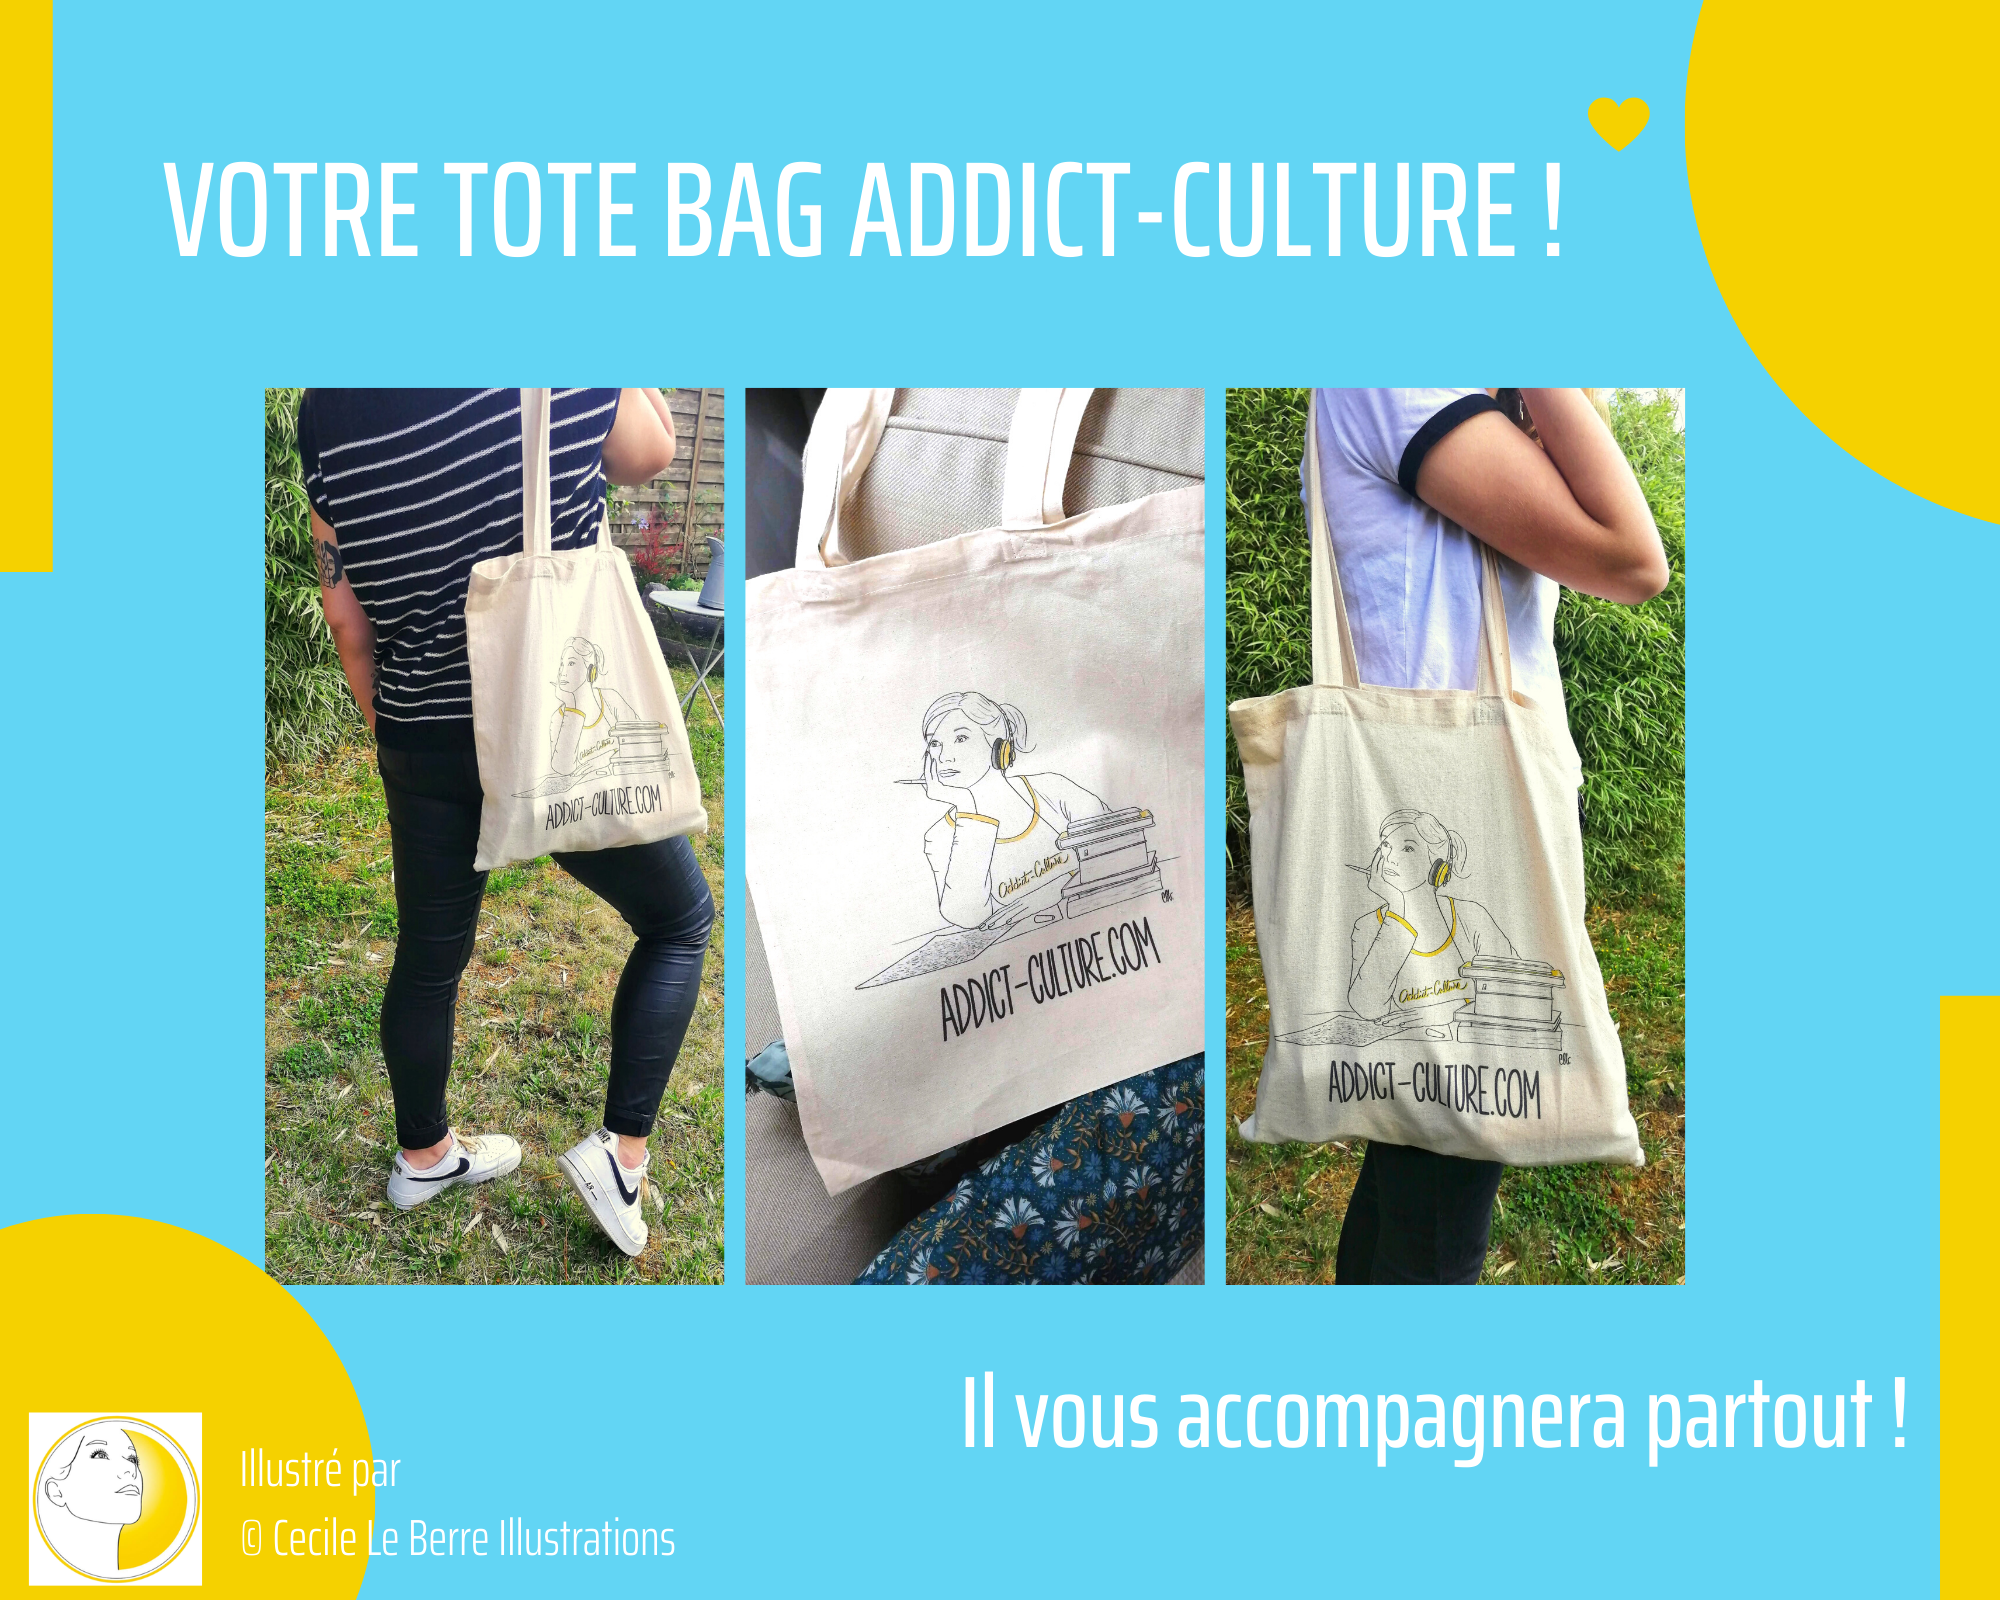 le tote bag d'addict-culture